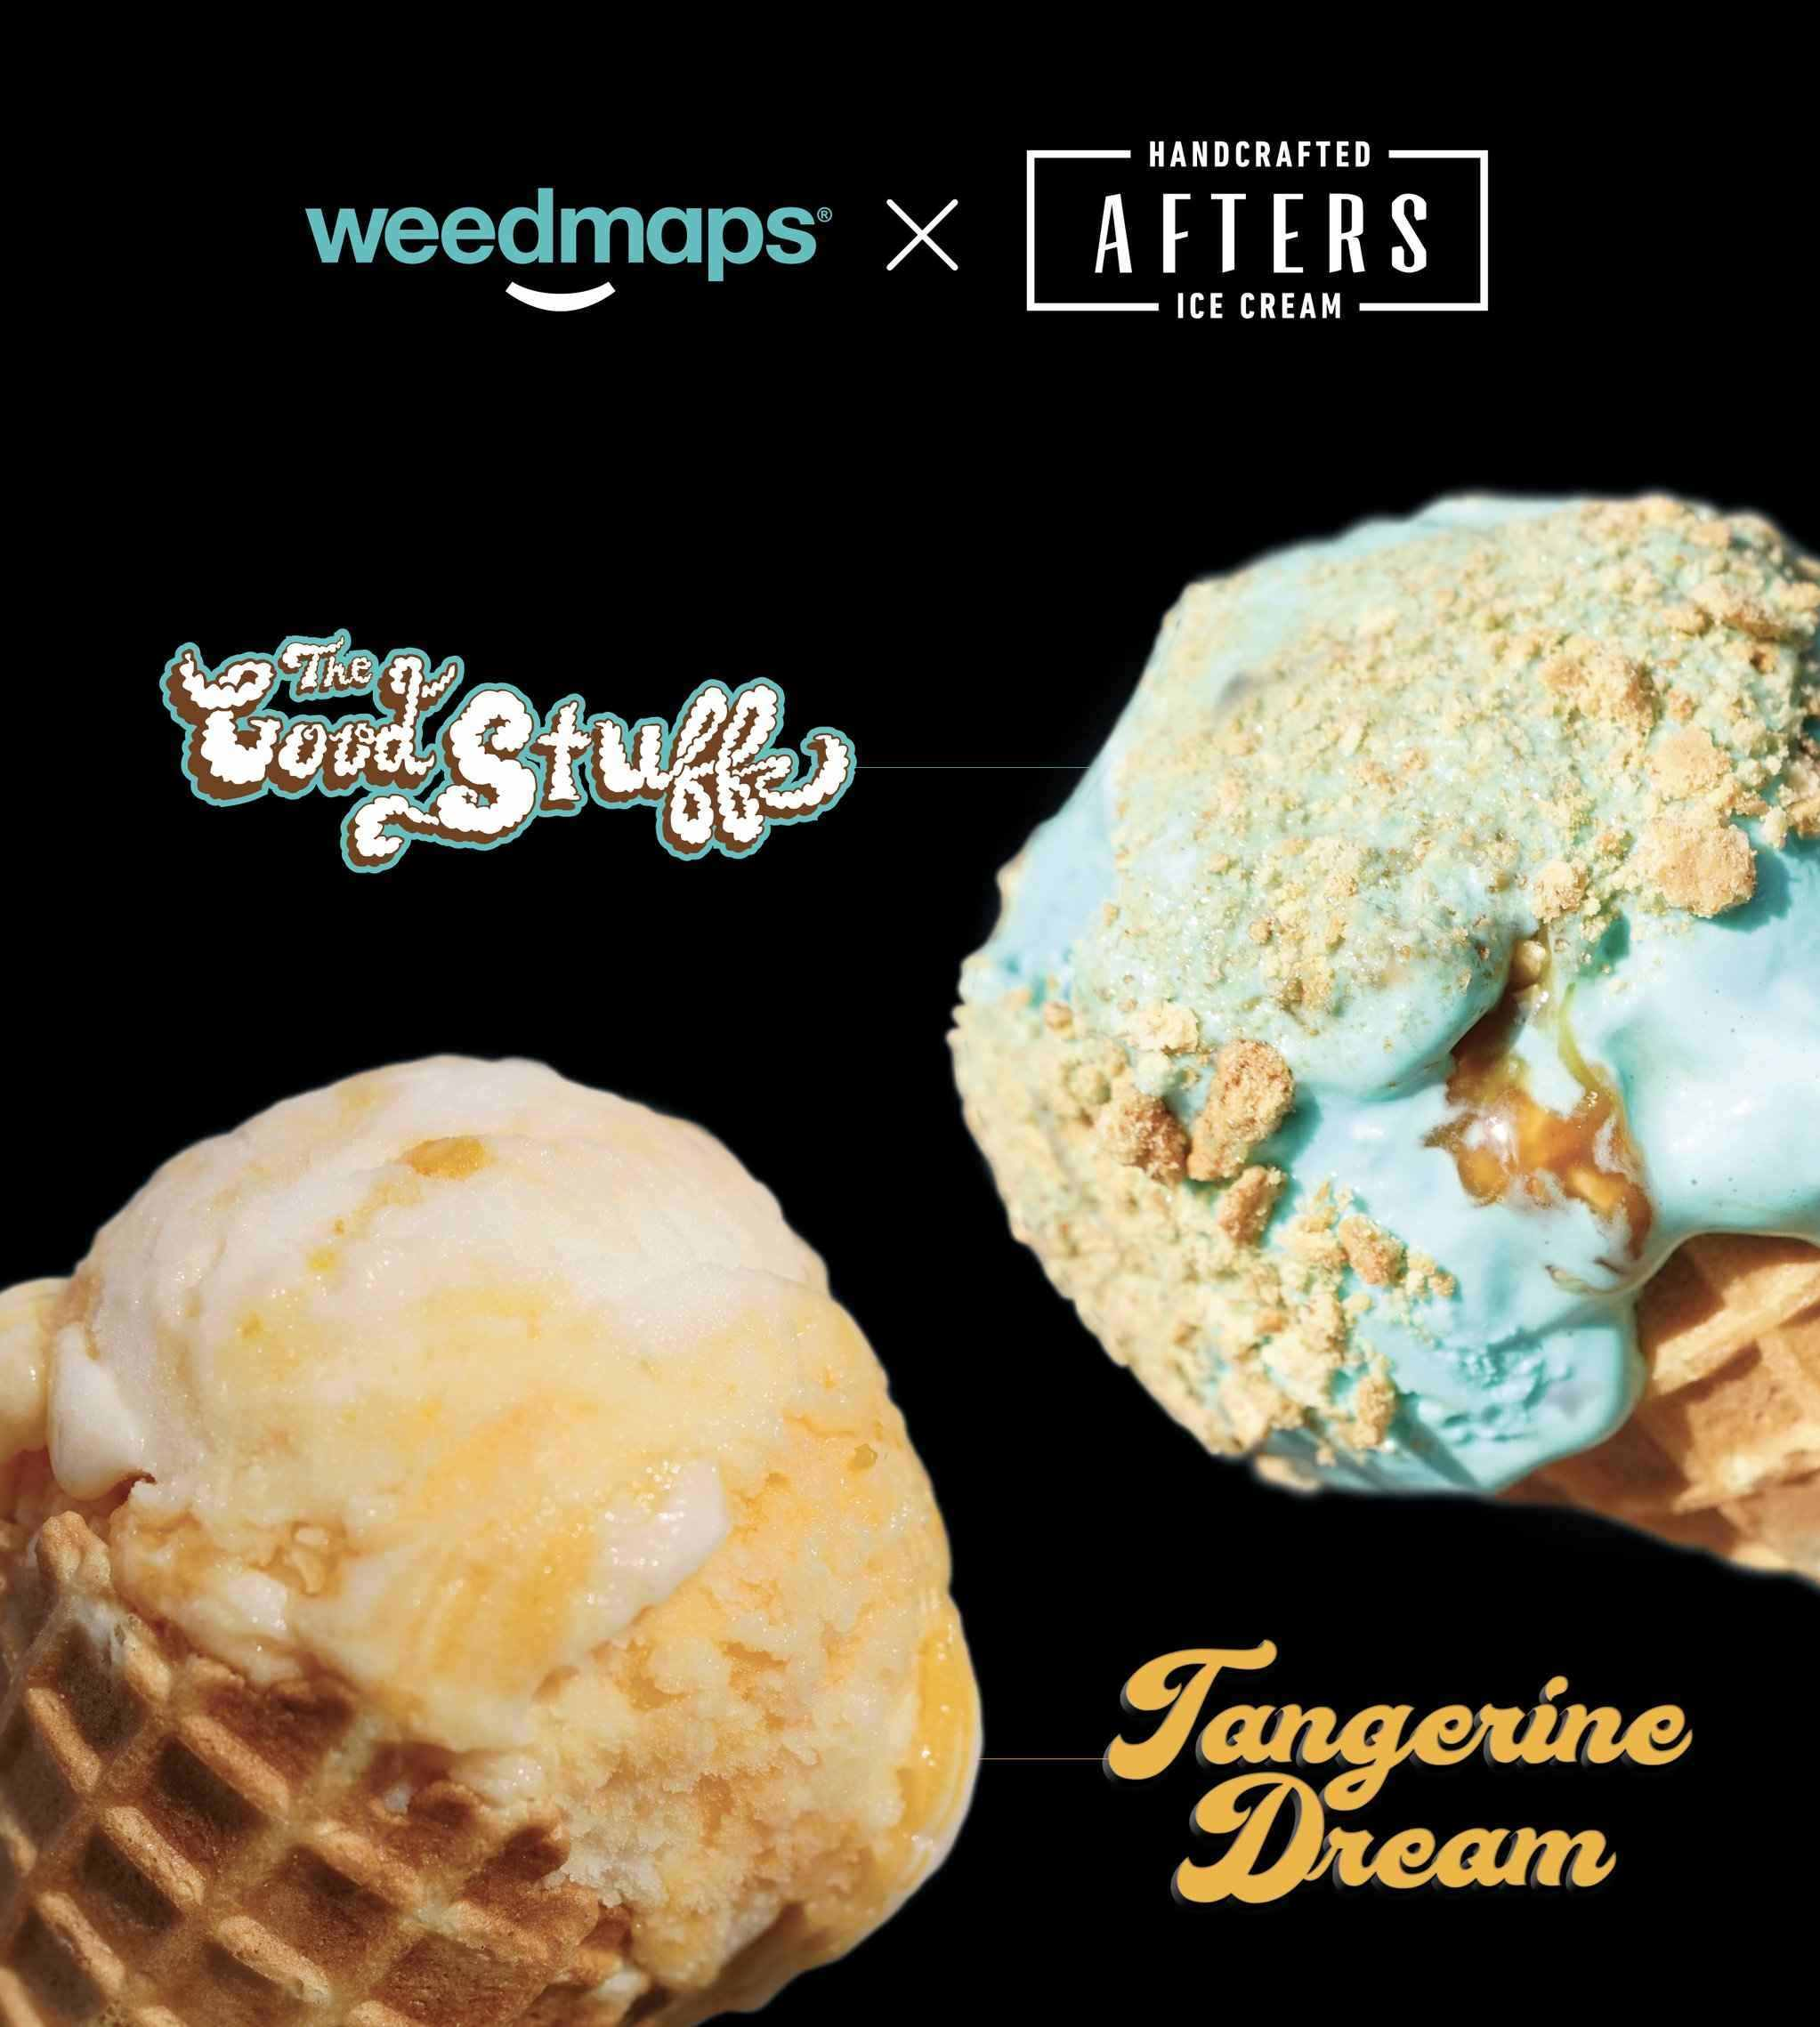 Afters Ice Cream x Weedmaps